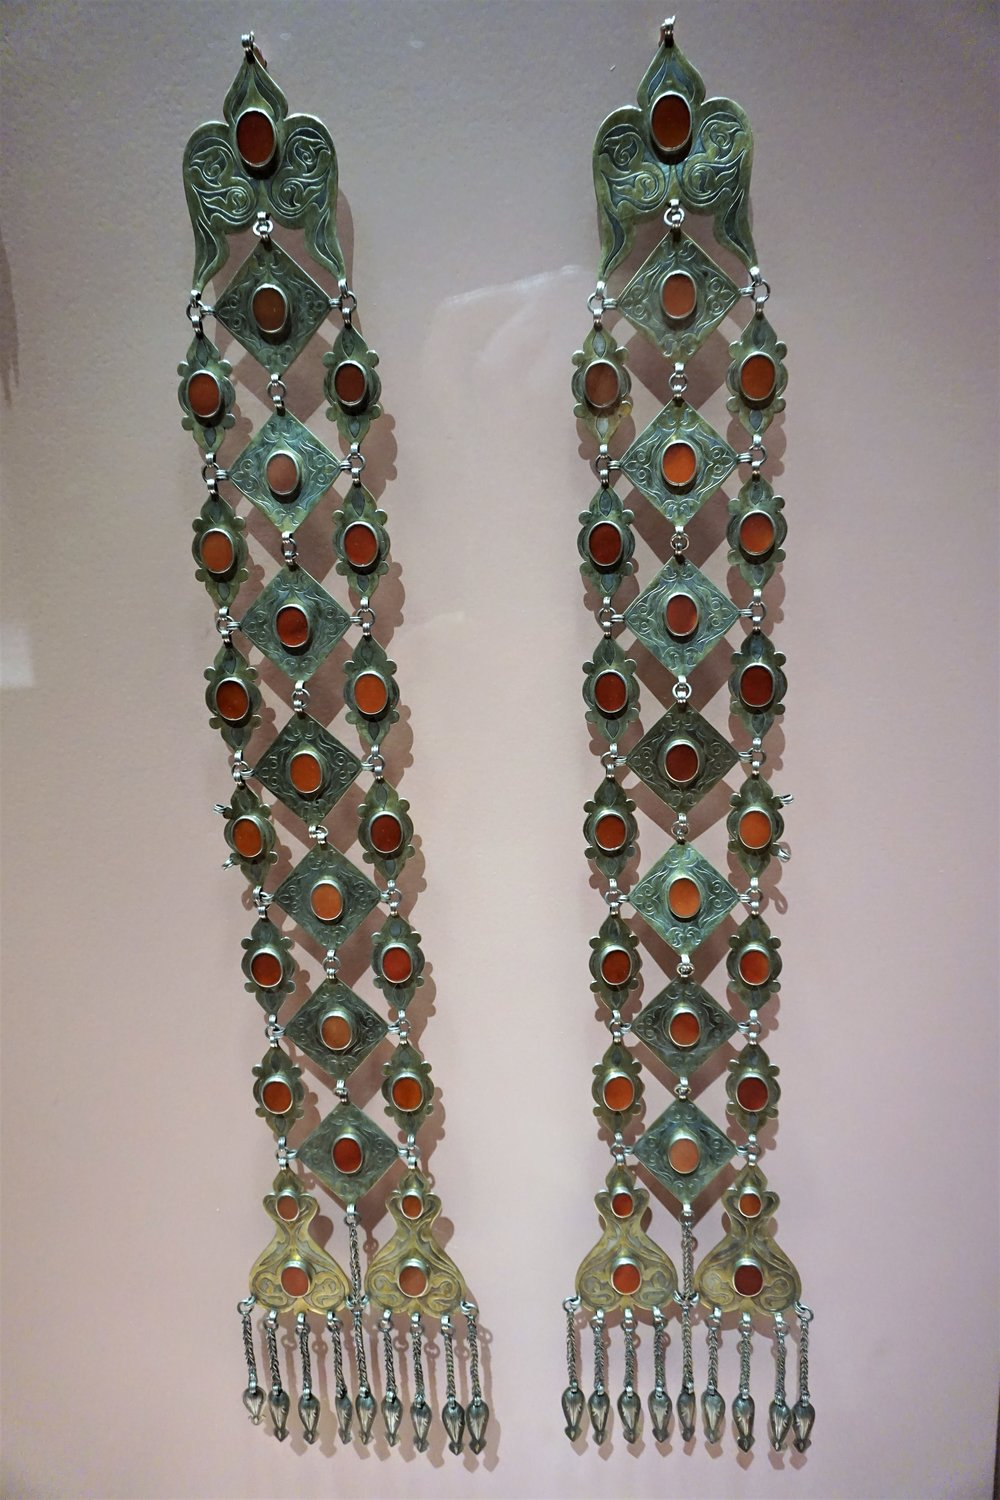 Plait ornaments - Turkmen - Central Asia or Iran - early 20th century